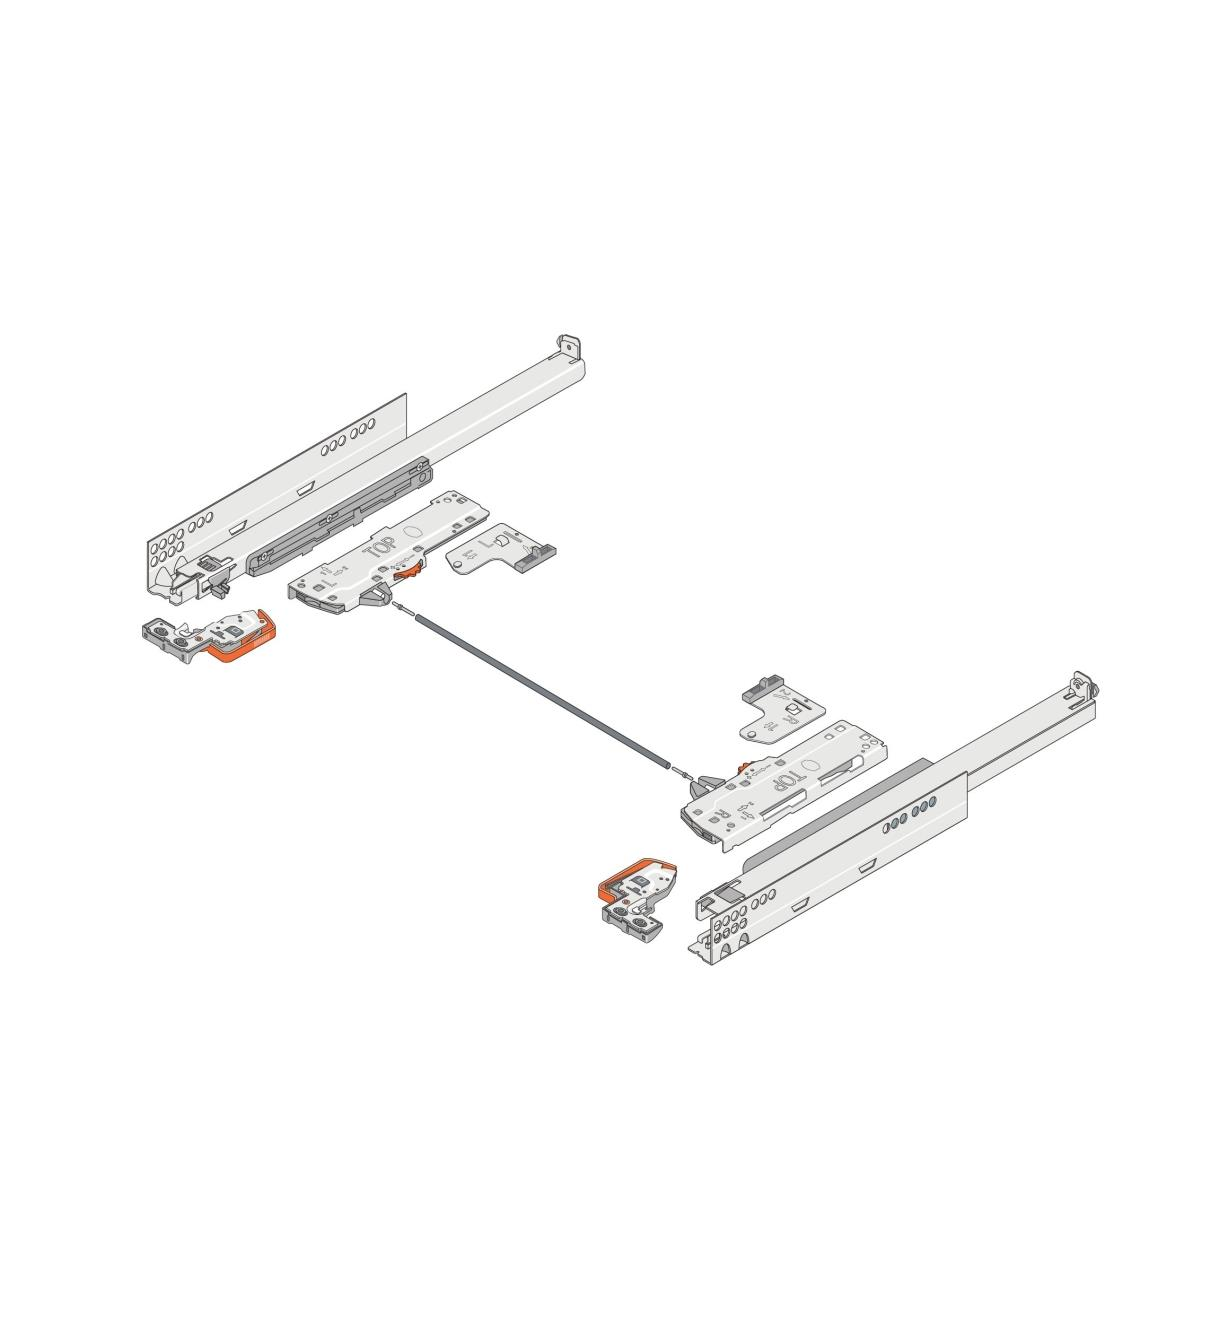 Diagram of Blum Tip-On Movento Drawer Slides connected by a linkage bar